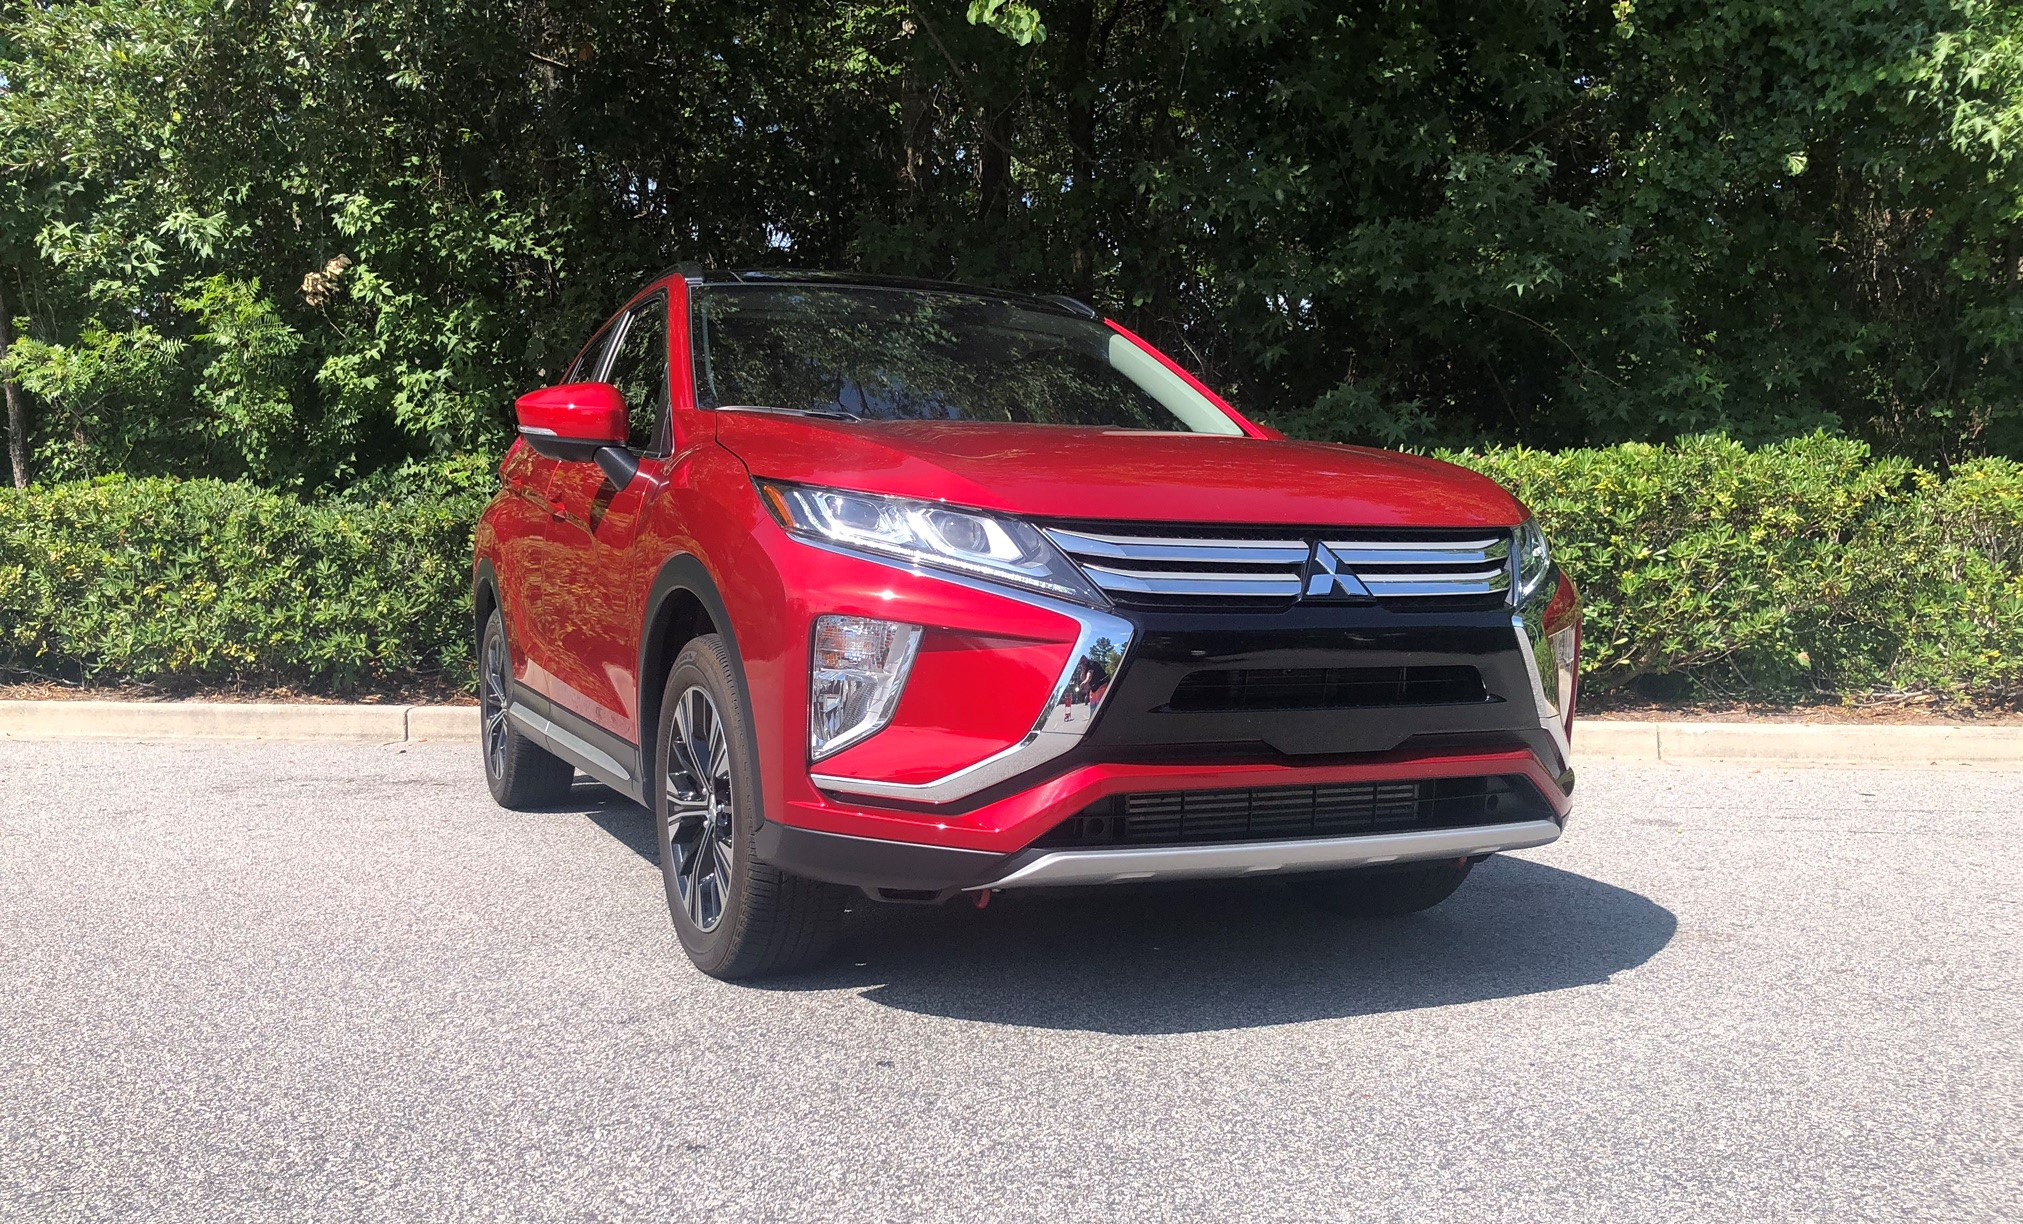 2019 Mitsubishi Eclipse Cross - Road Test Review +